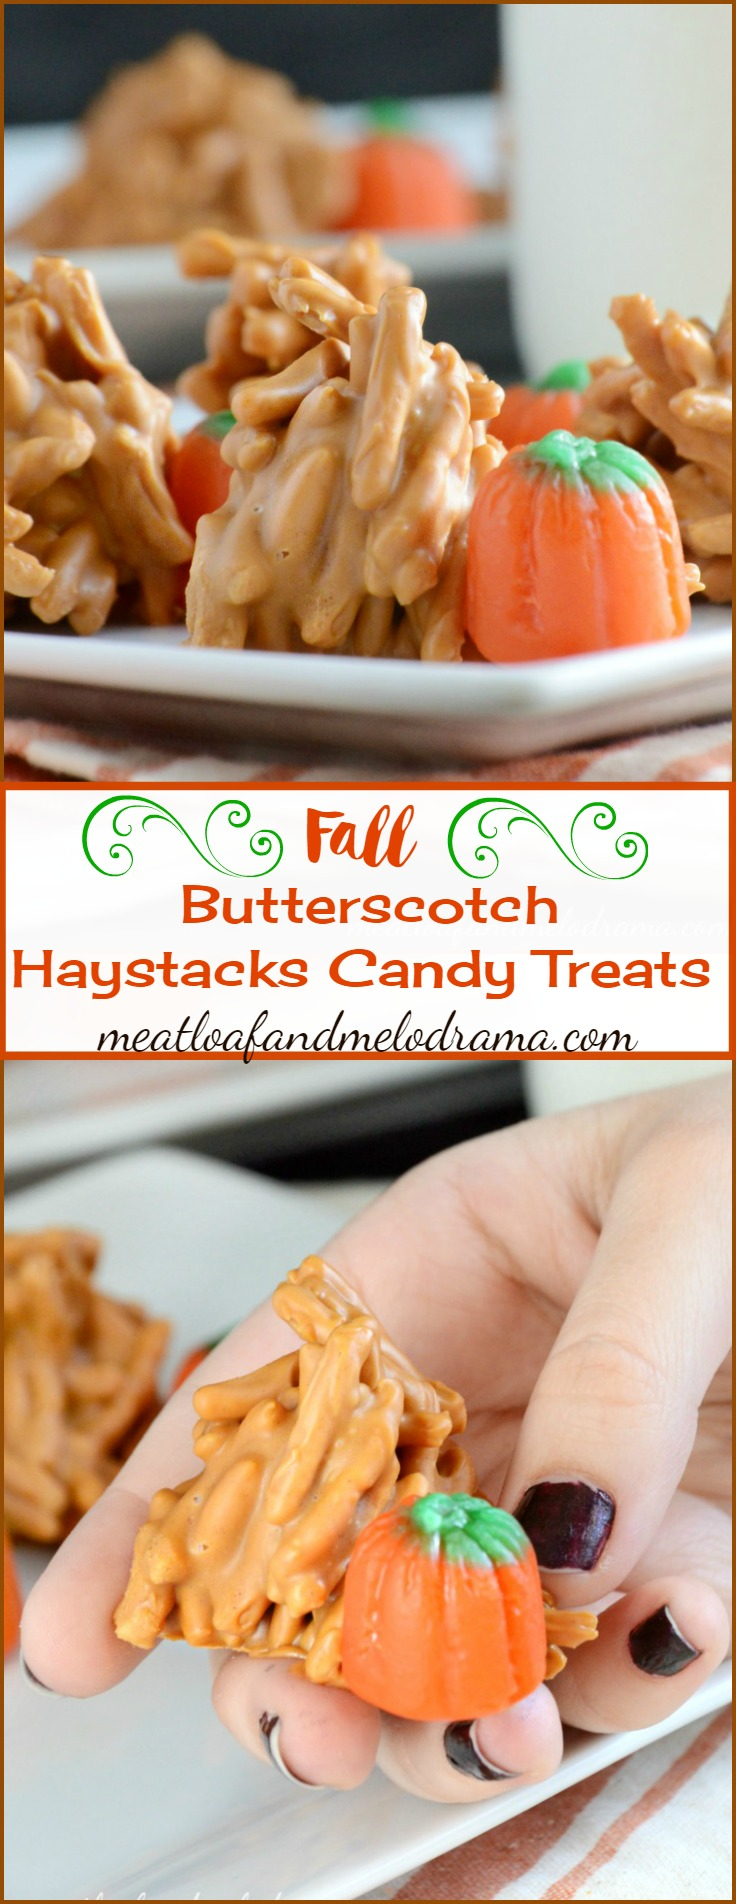 fall-butterscotch-haystacks-candy-treats